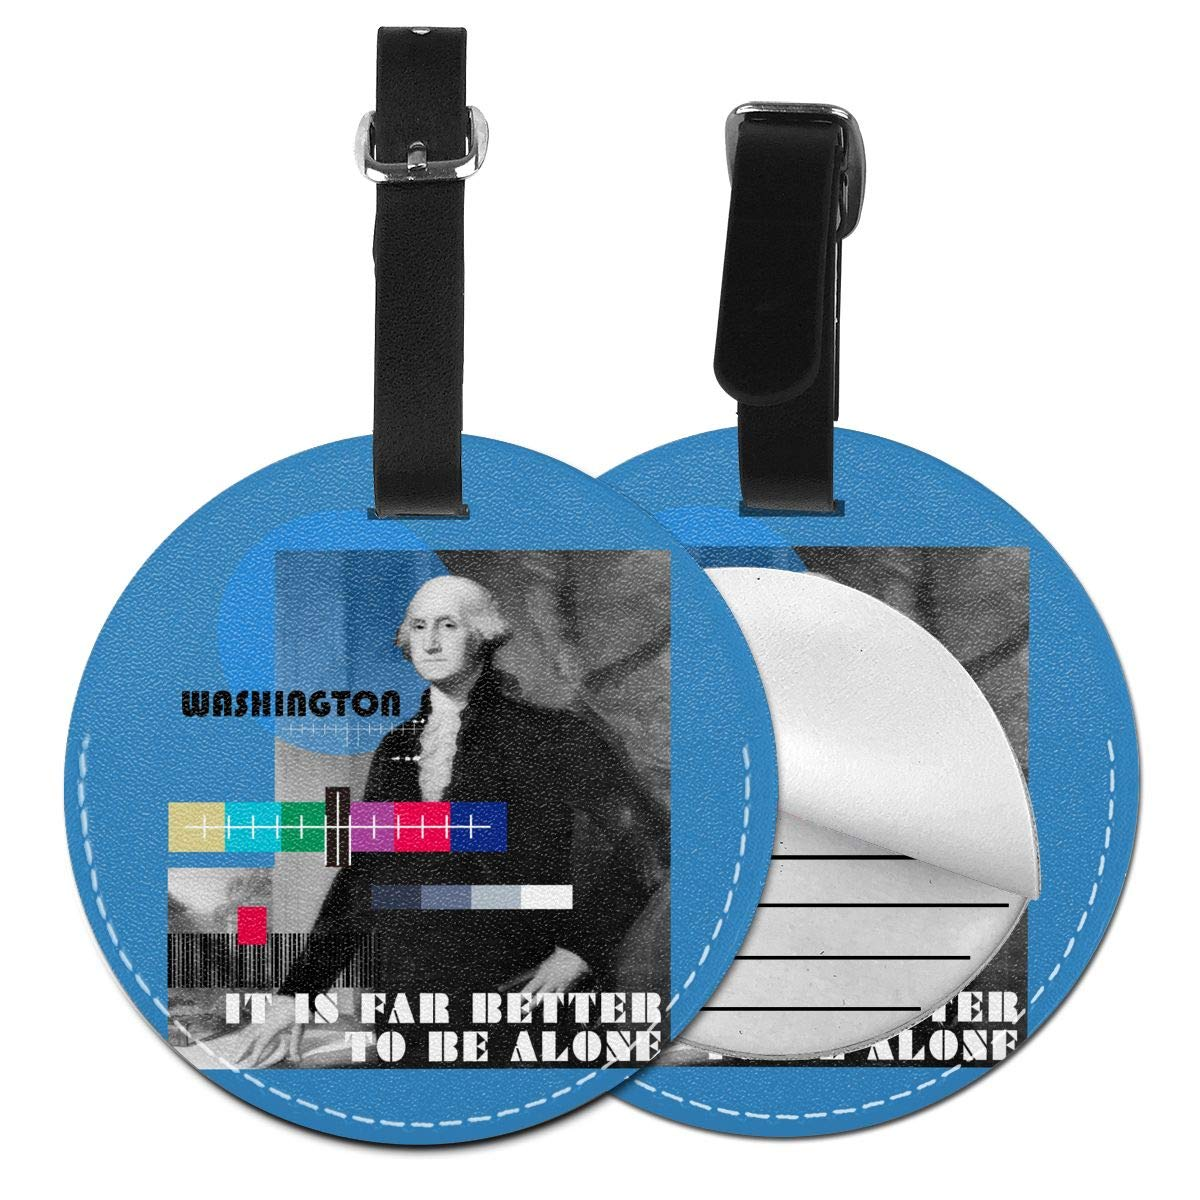 1pcs,2pcs,4pcs It Is Far Better To Be Alone Washington Pu Leather Double Sides Print Round Luggage Tag Mutilple Packs